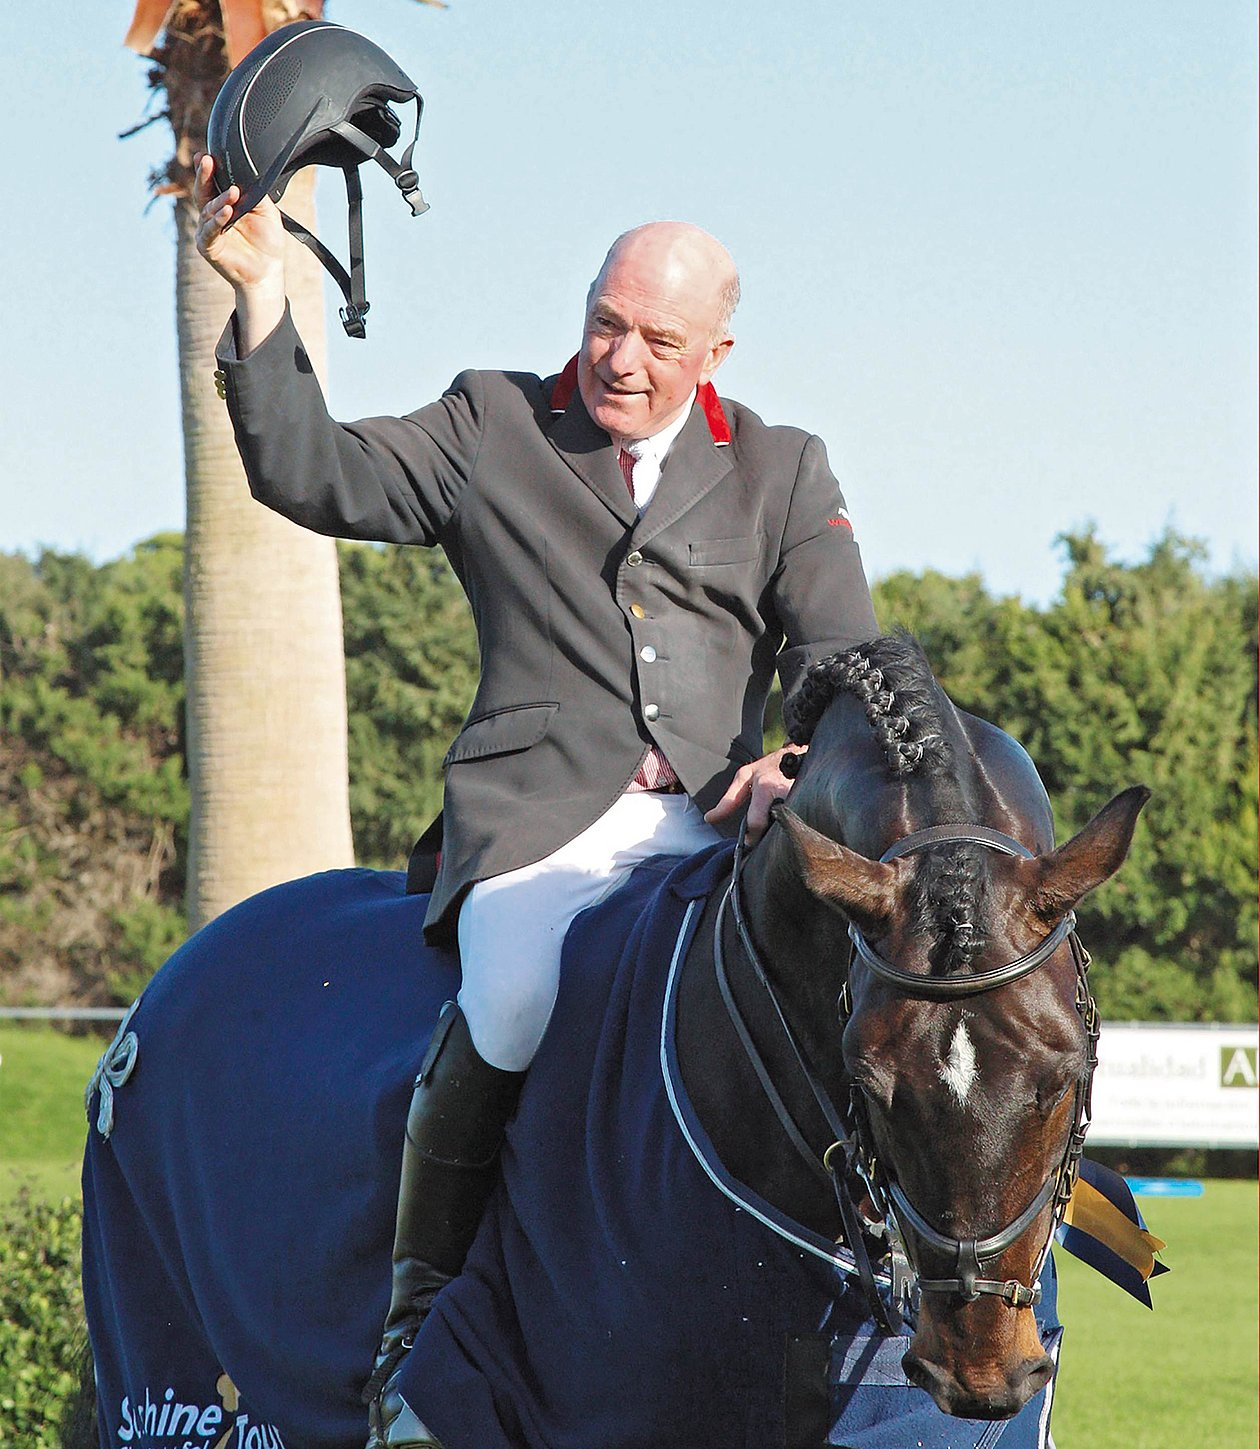 Interview with JOHN WHITAKER - British Showjumper